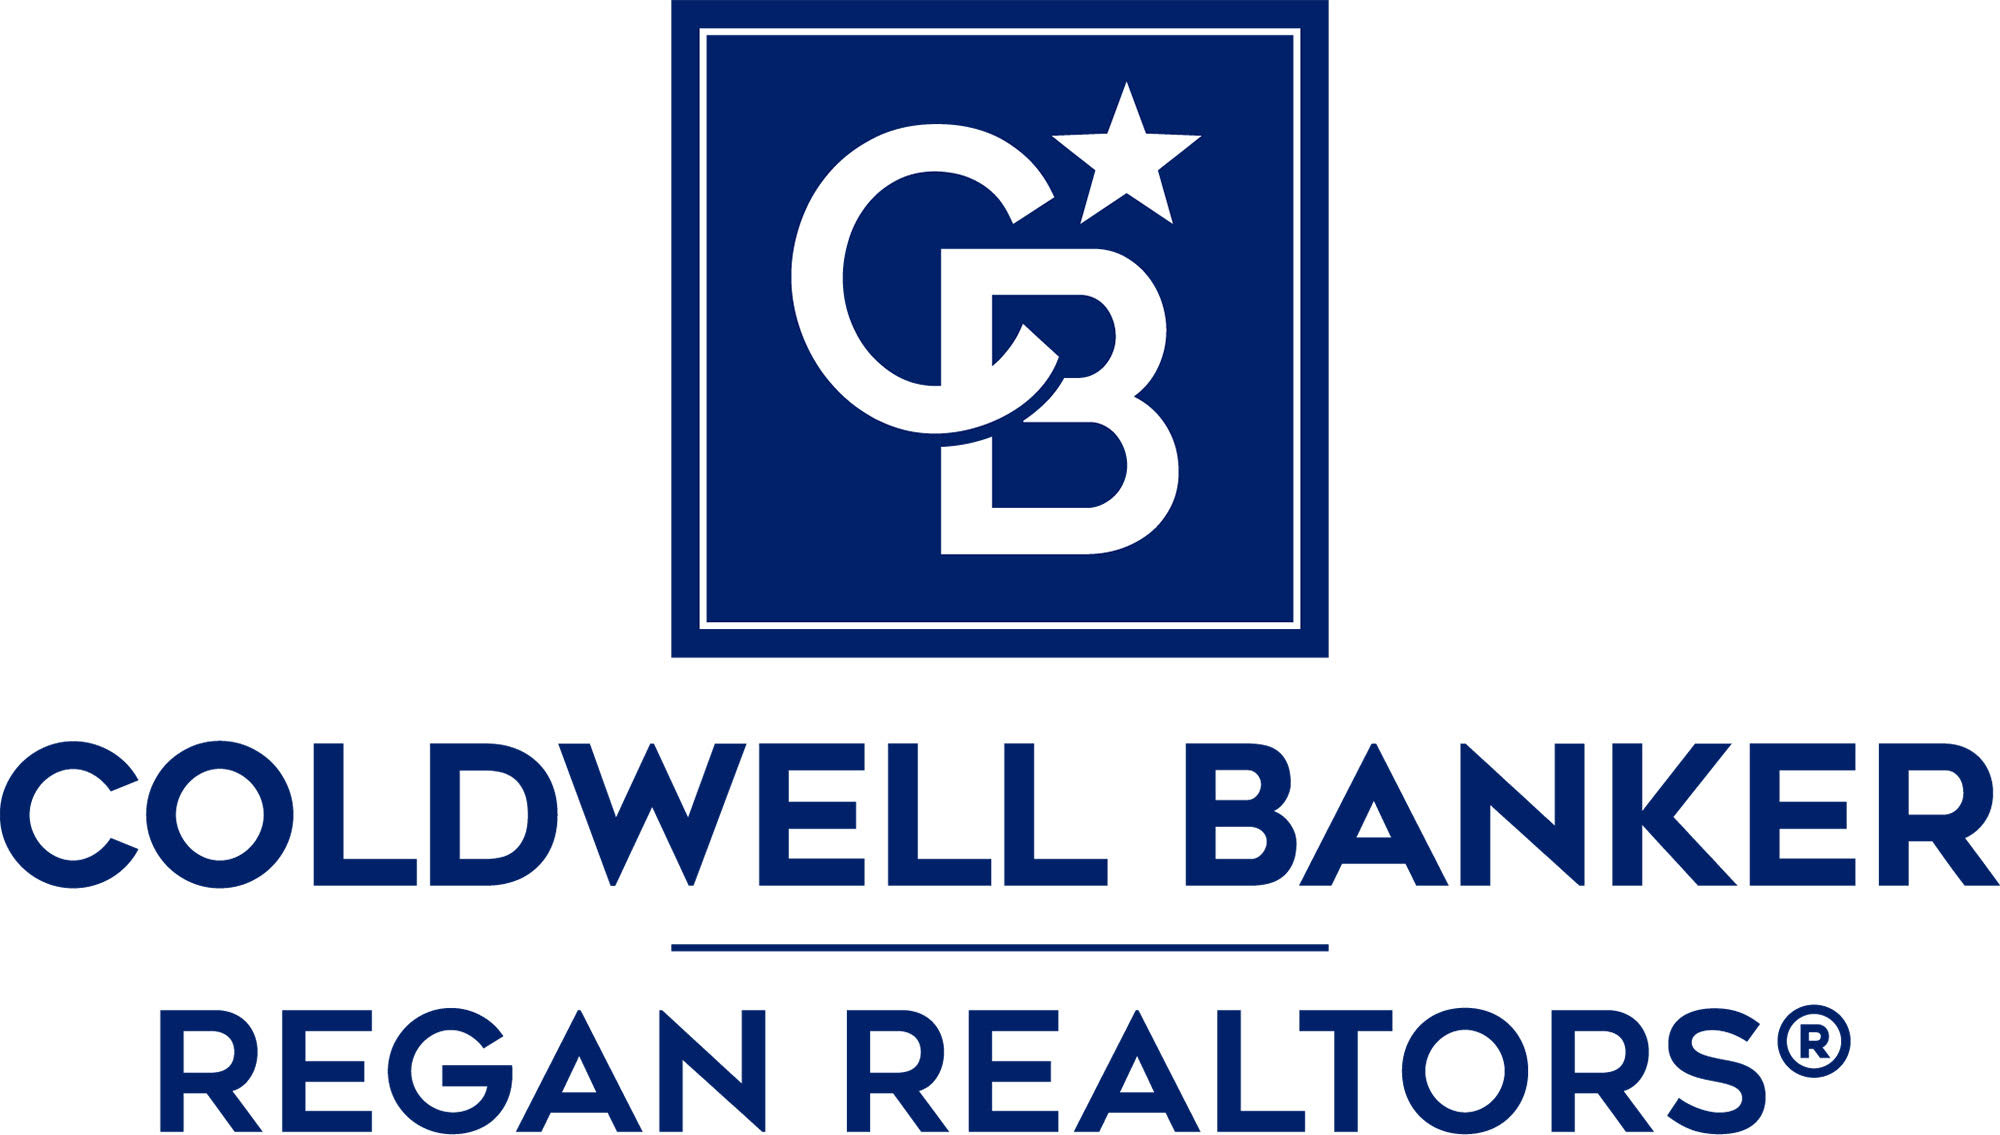 Michelle Farrell - Coldwell Banker Regan